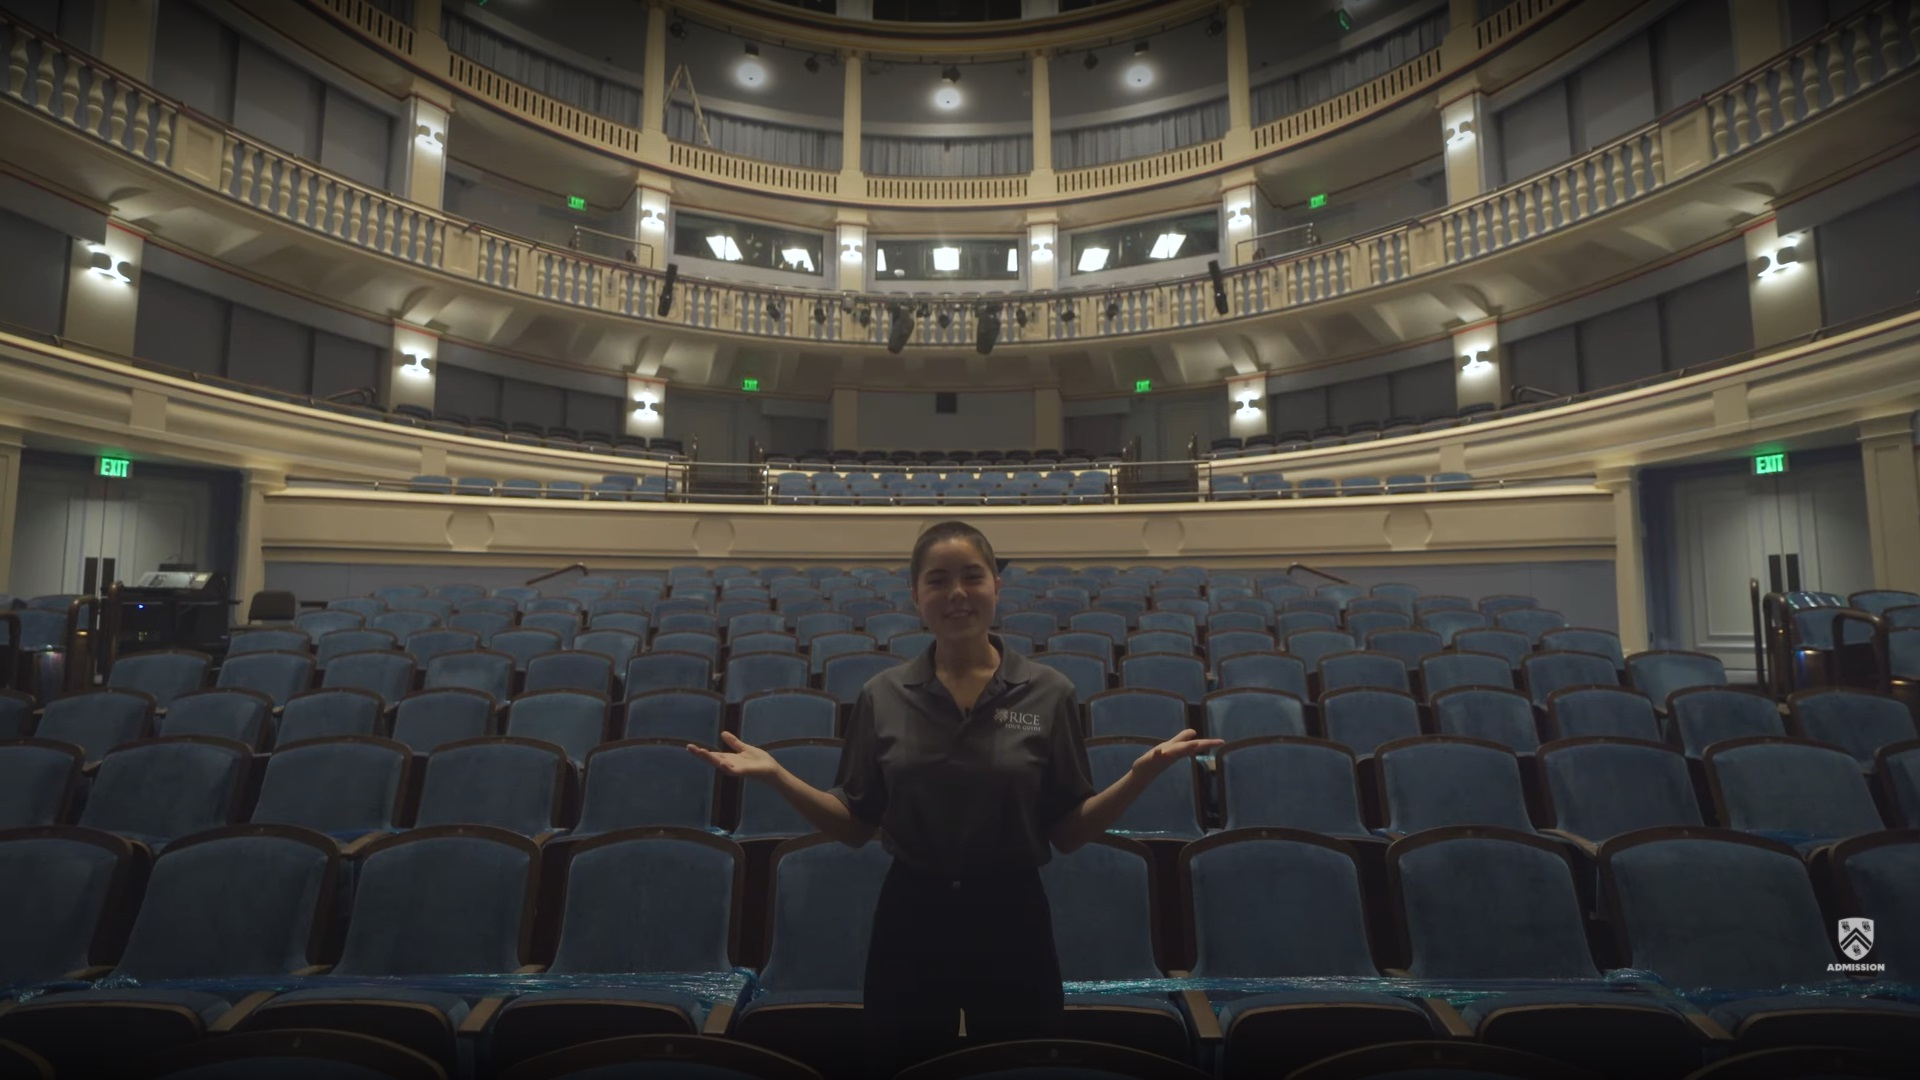 The tour guide stands in front of the main theatre inside the Brockman Hall for Opera.